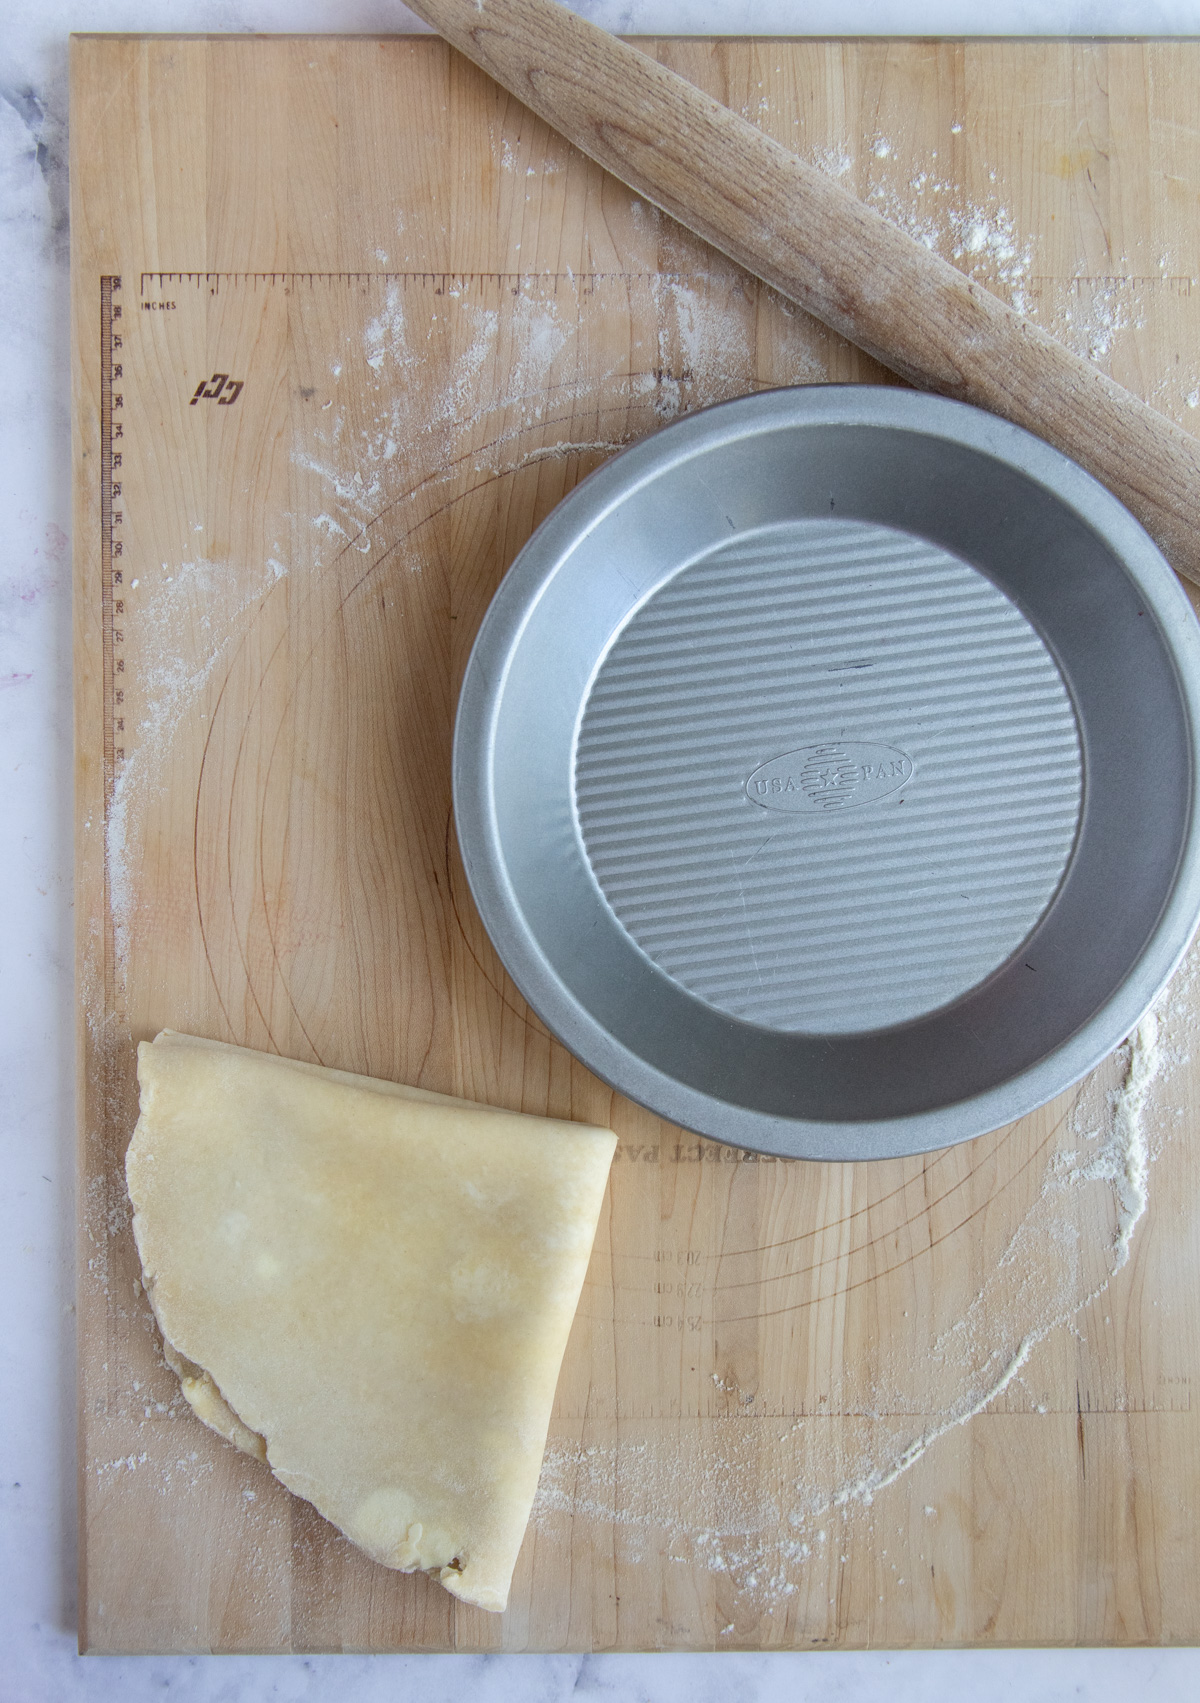 Pie plate next to pie dough which is folded into quarters before placing it in the pie plate